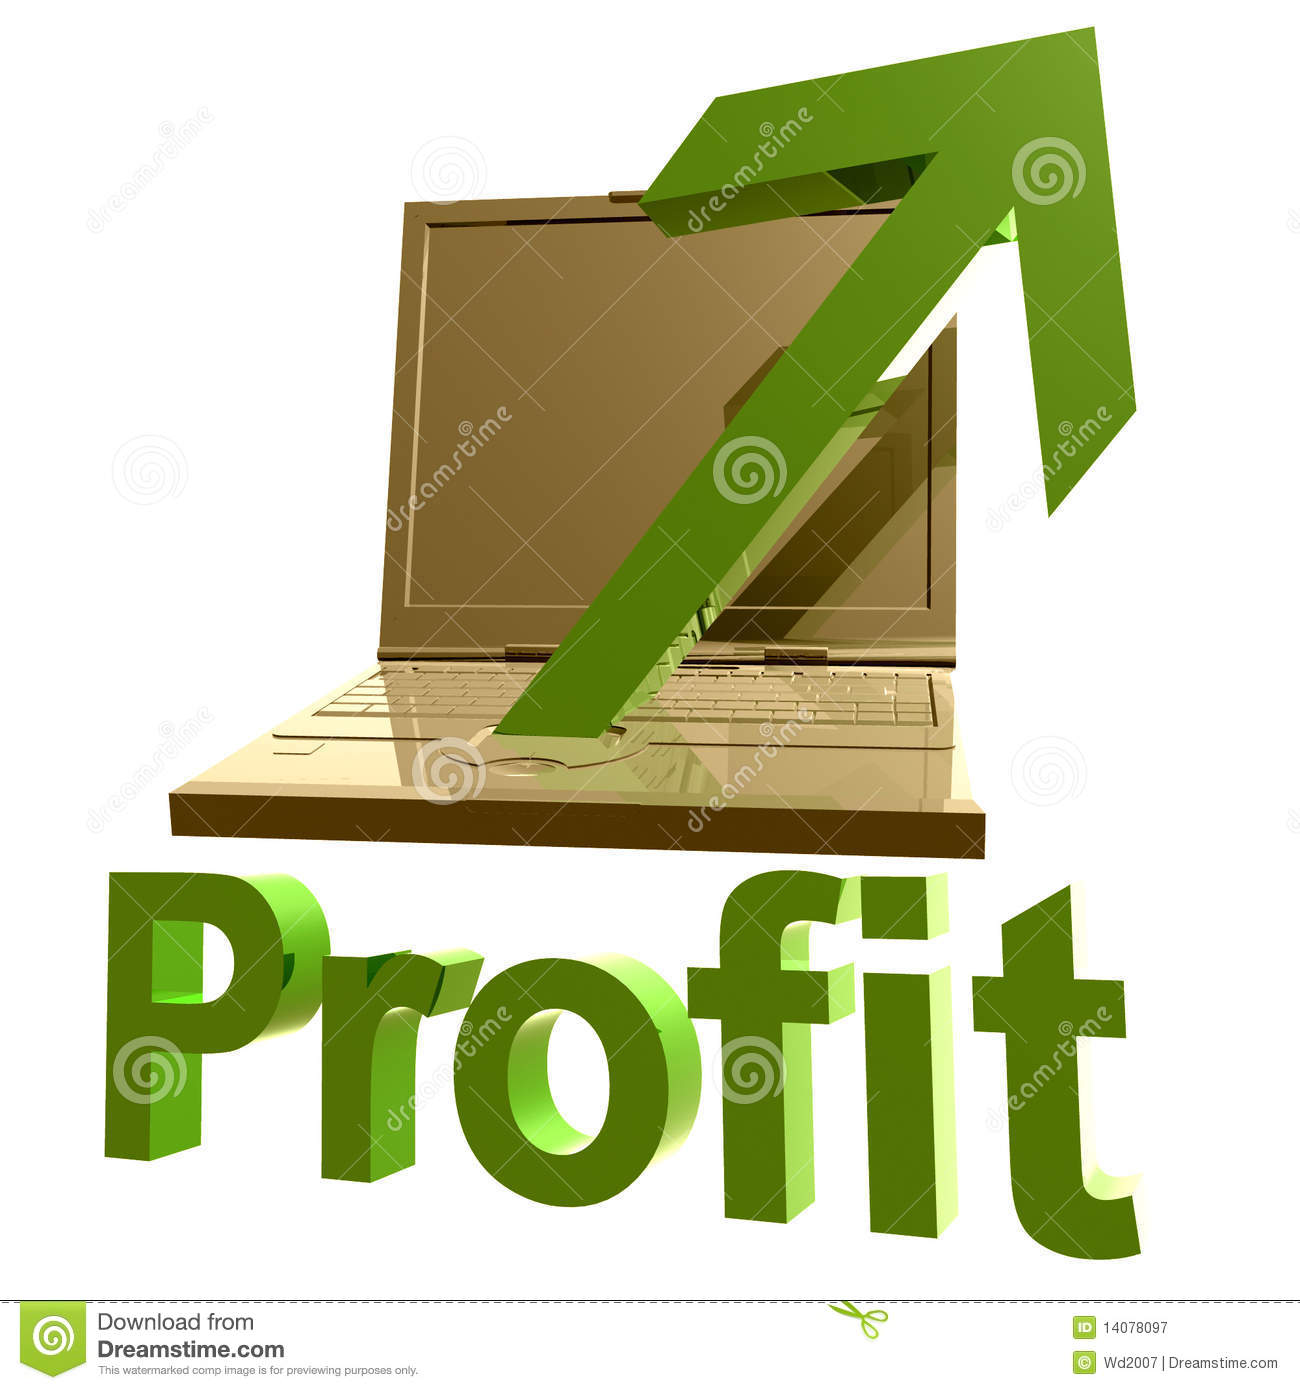 Http Dreamstime Com Royalty Free Stock Photography Profitable Online Business Icon Image14078097